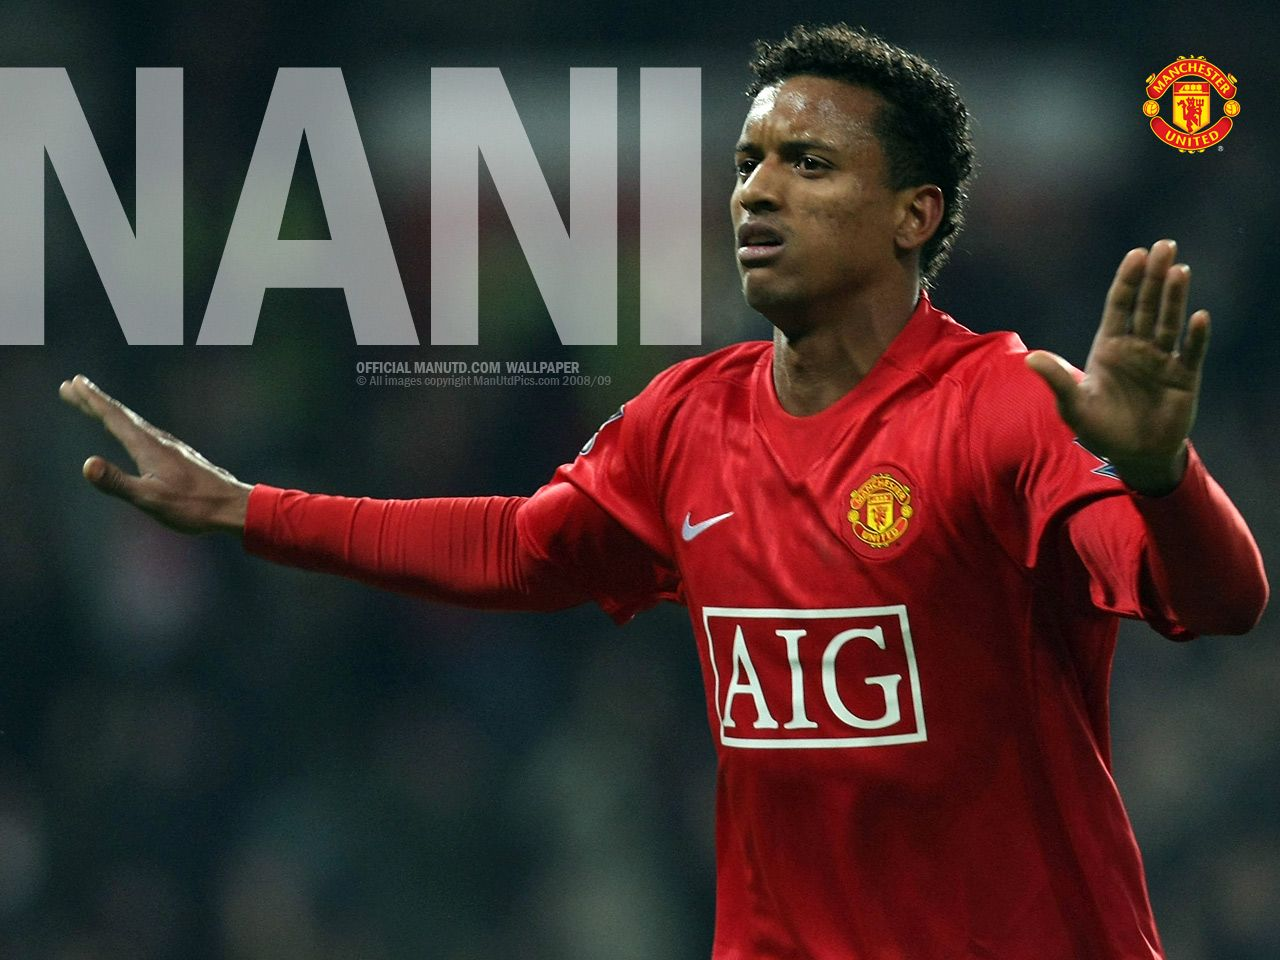 luis nani manchester united wallpaper, portugal winger, united winger, nani 17, ronaldo partner